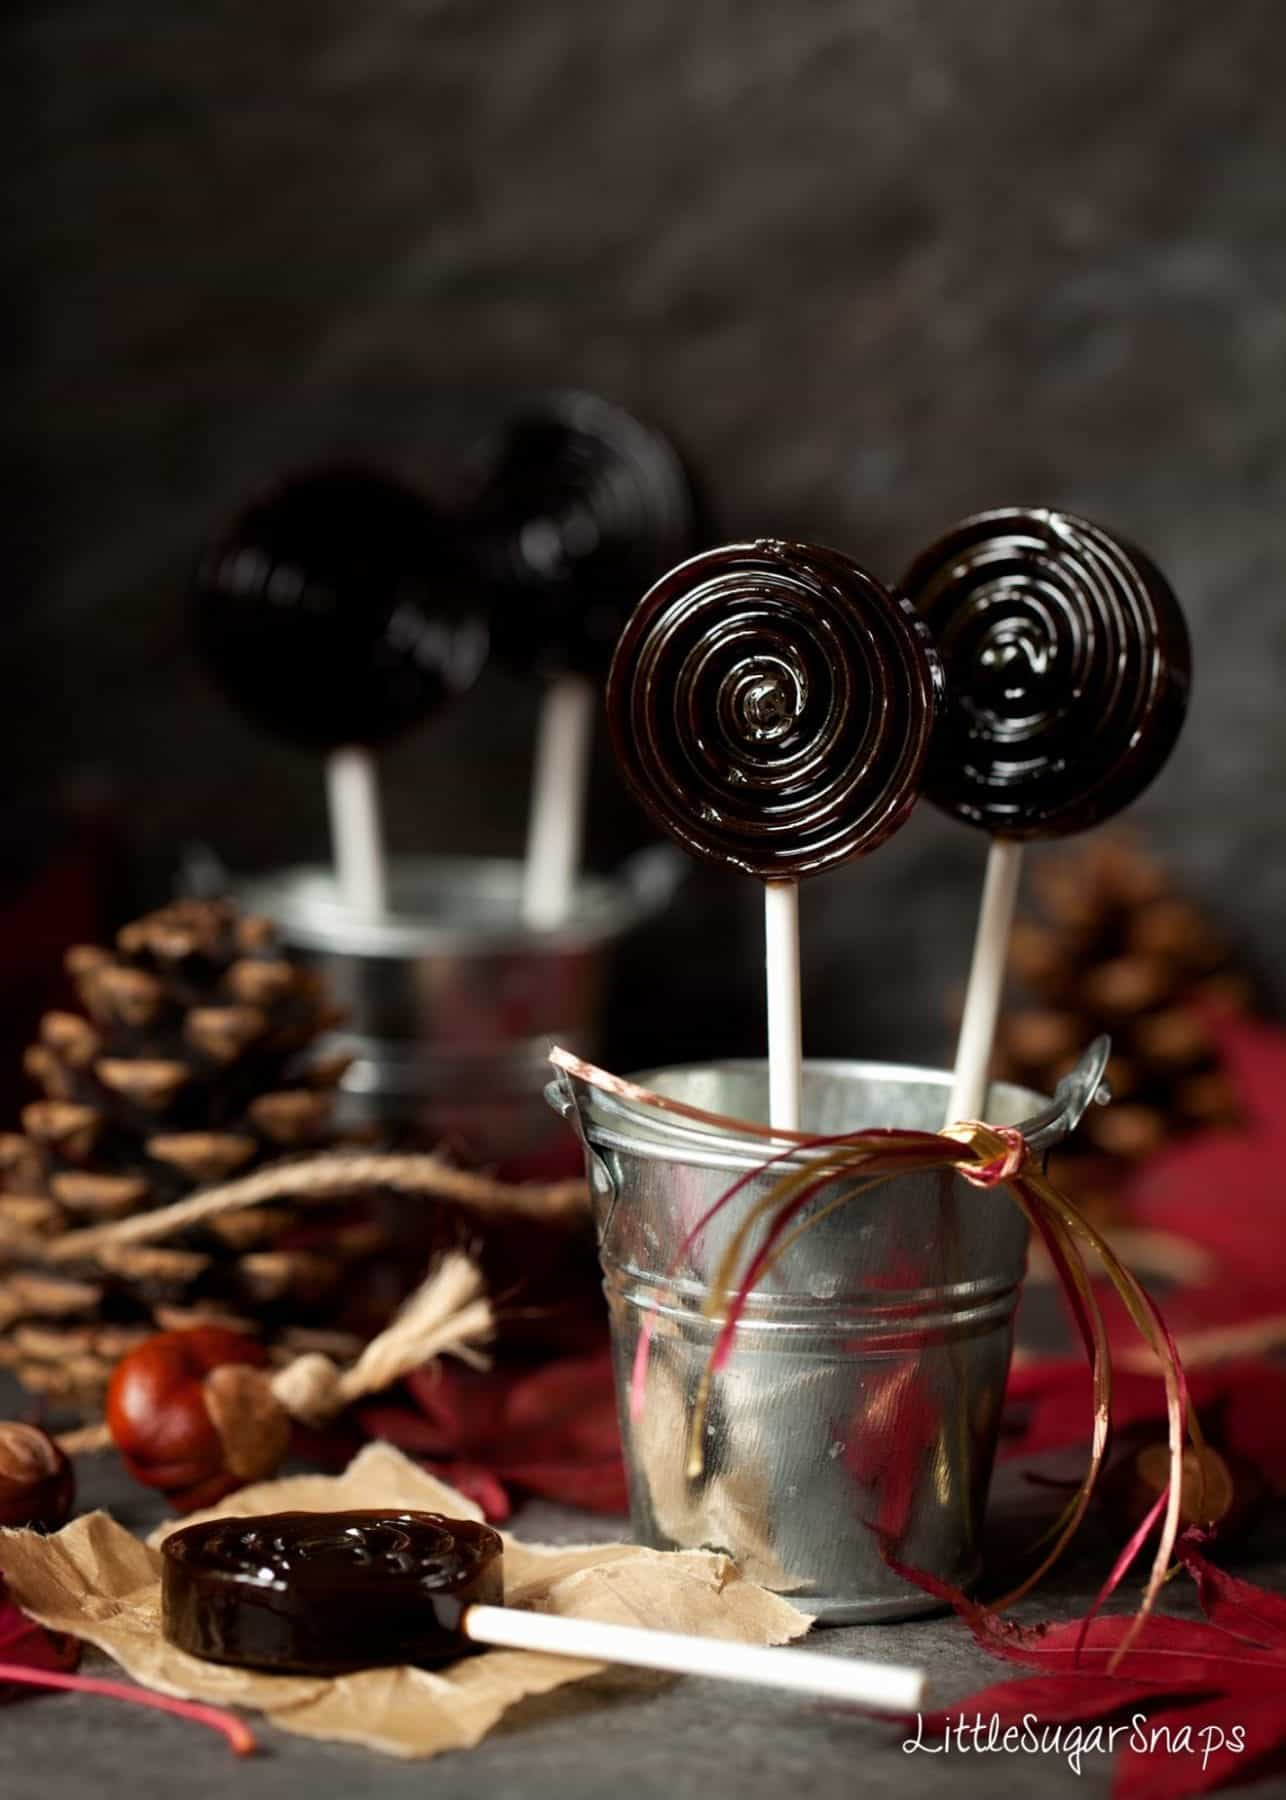 Bonfire Toffee (Treacle Toffee) lollipops